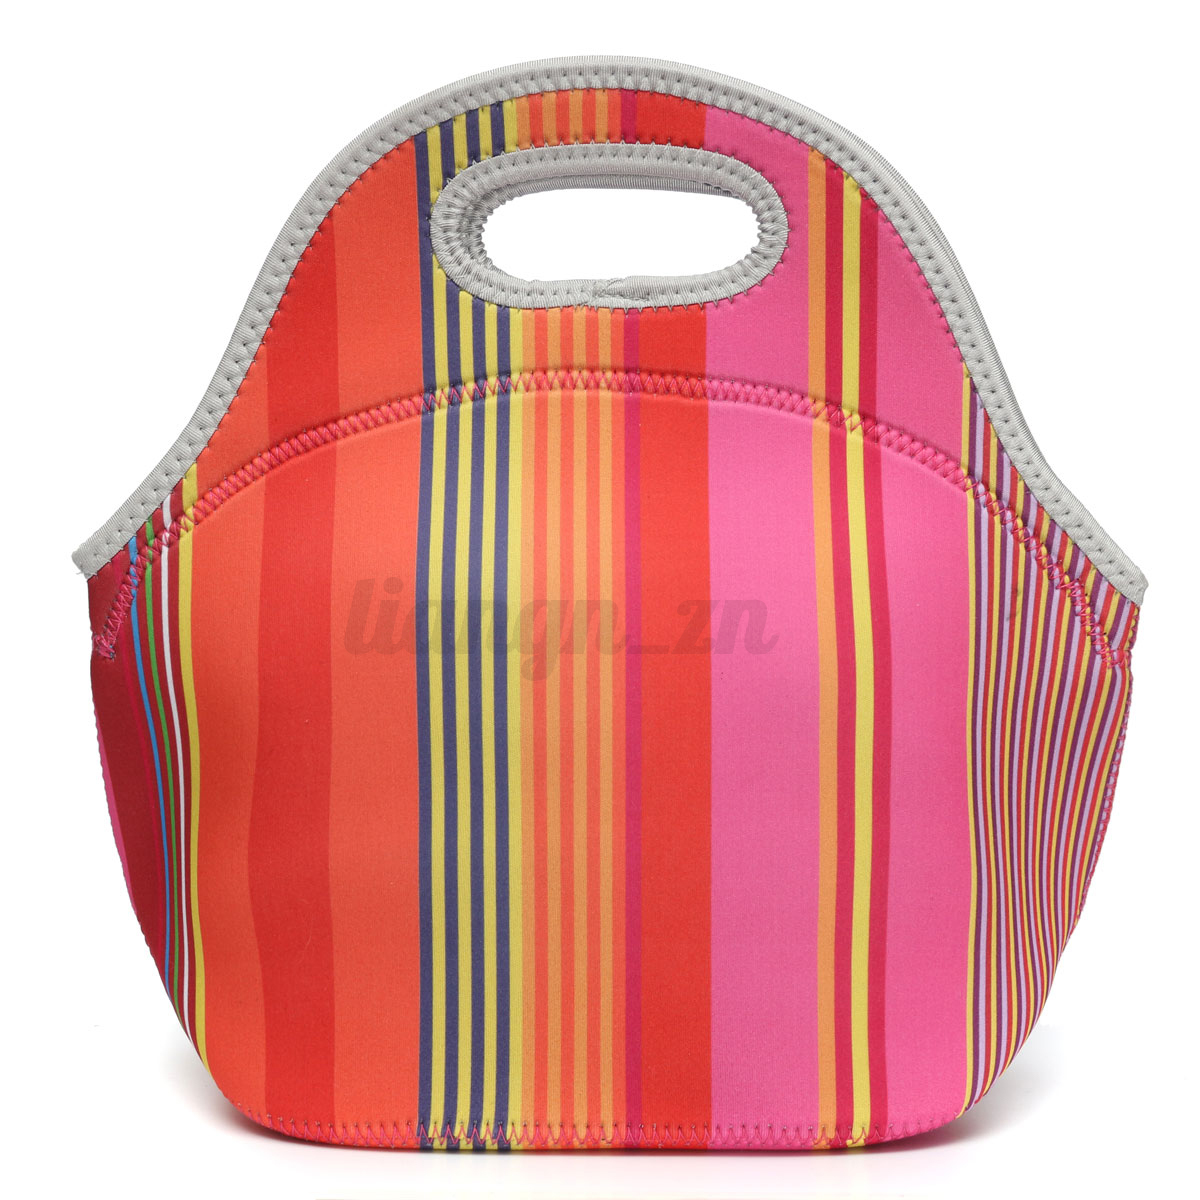 sac b ite repas d jeuner pique nique bento isotherme lunch bag voyage portable ebay. Black Bedroom Furniture Sets. Home Design Ideas